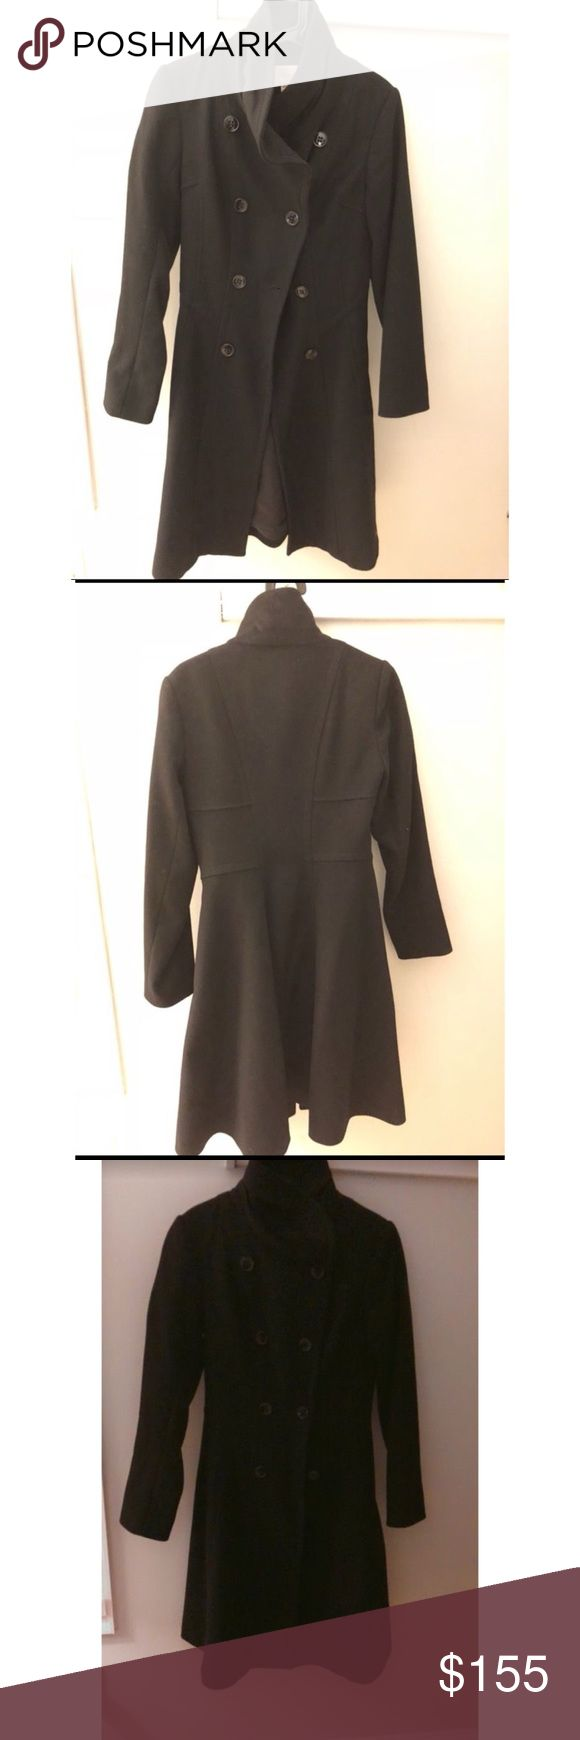 Reiss  Wool Coat Beautiful Reiss Wool Coat,Pre-Owned in excellent Condition!Size Small Reiss Jackets & Coats